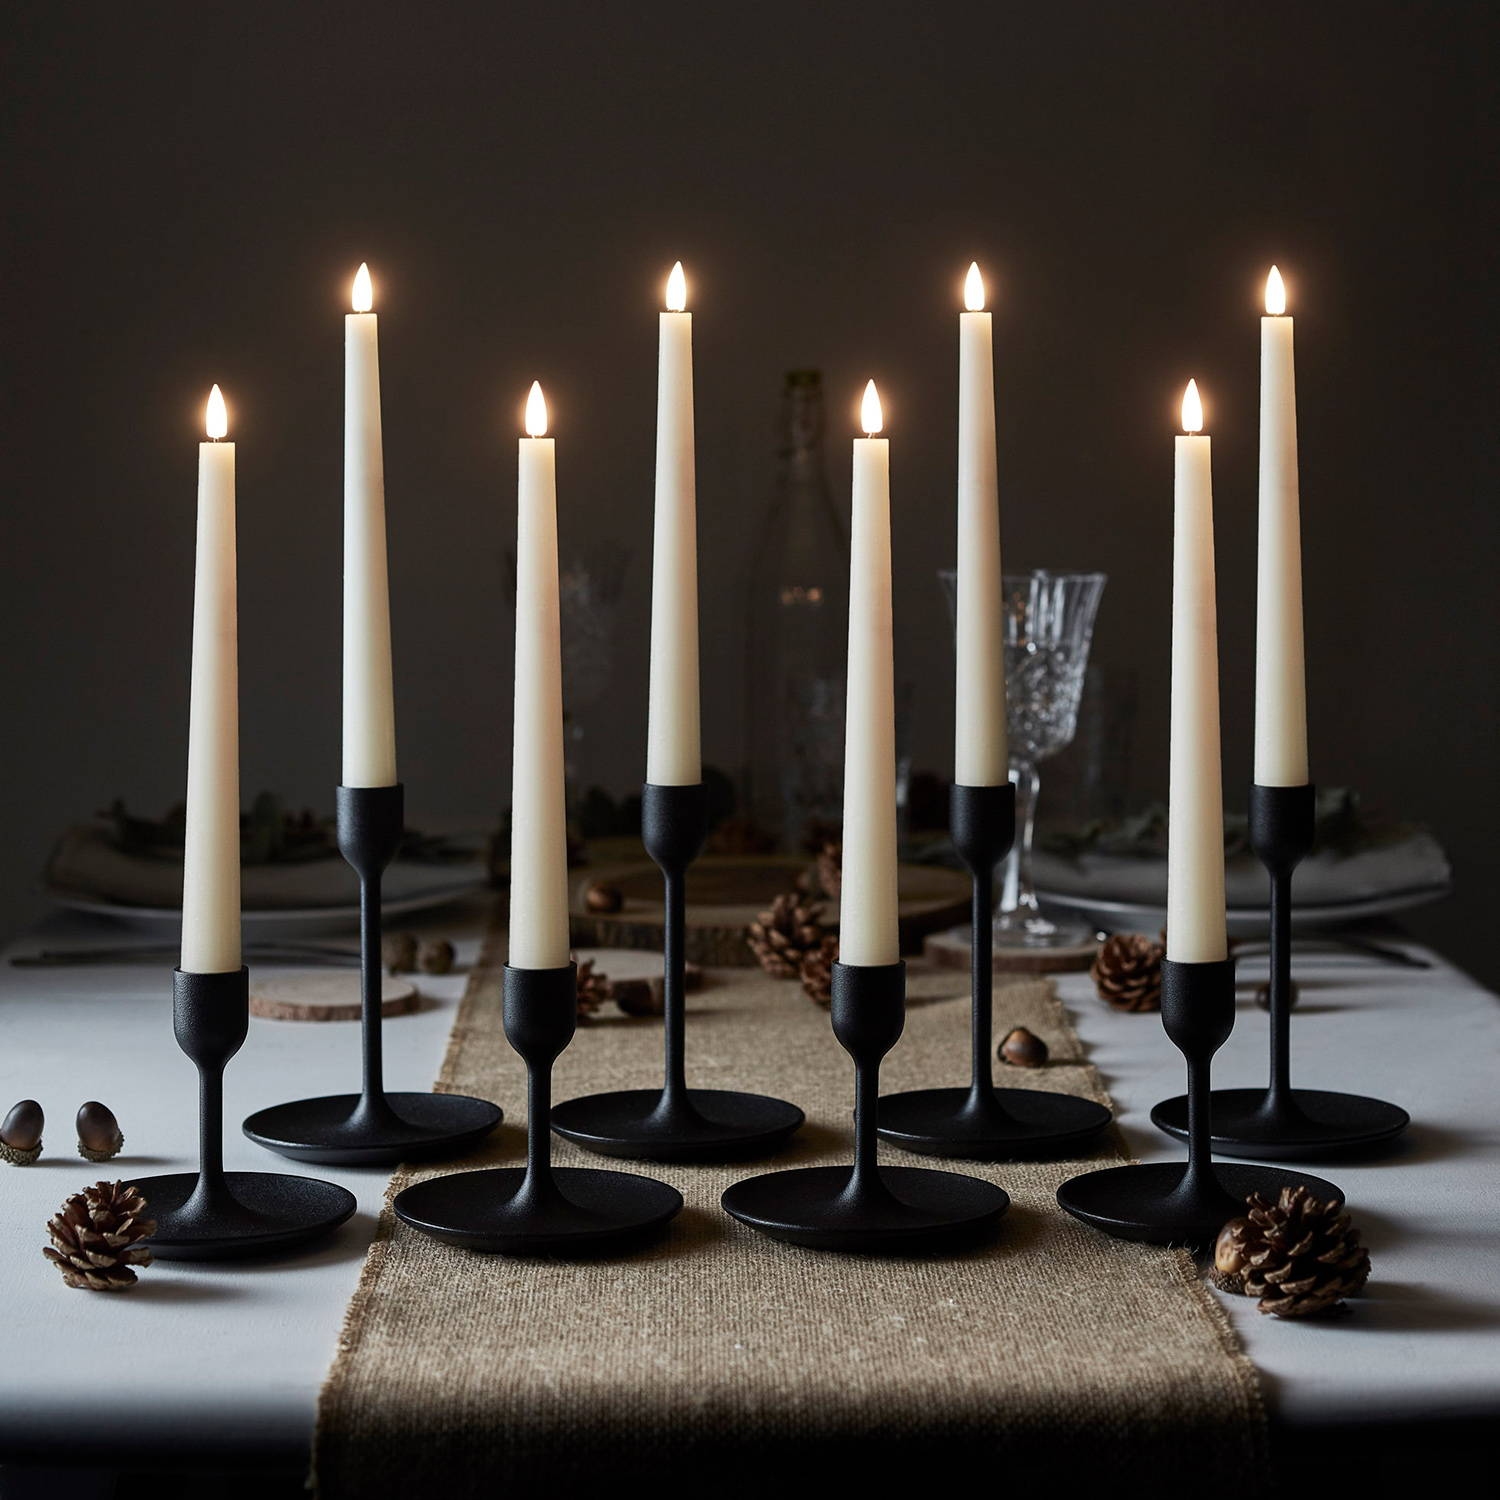 Taper candles illuminated on fall table